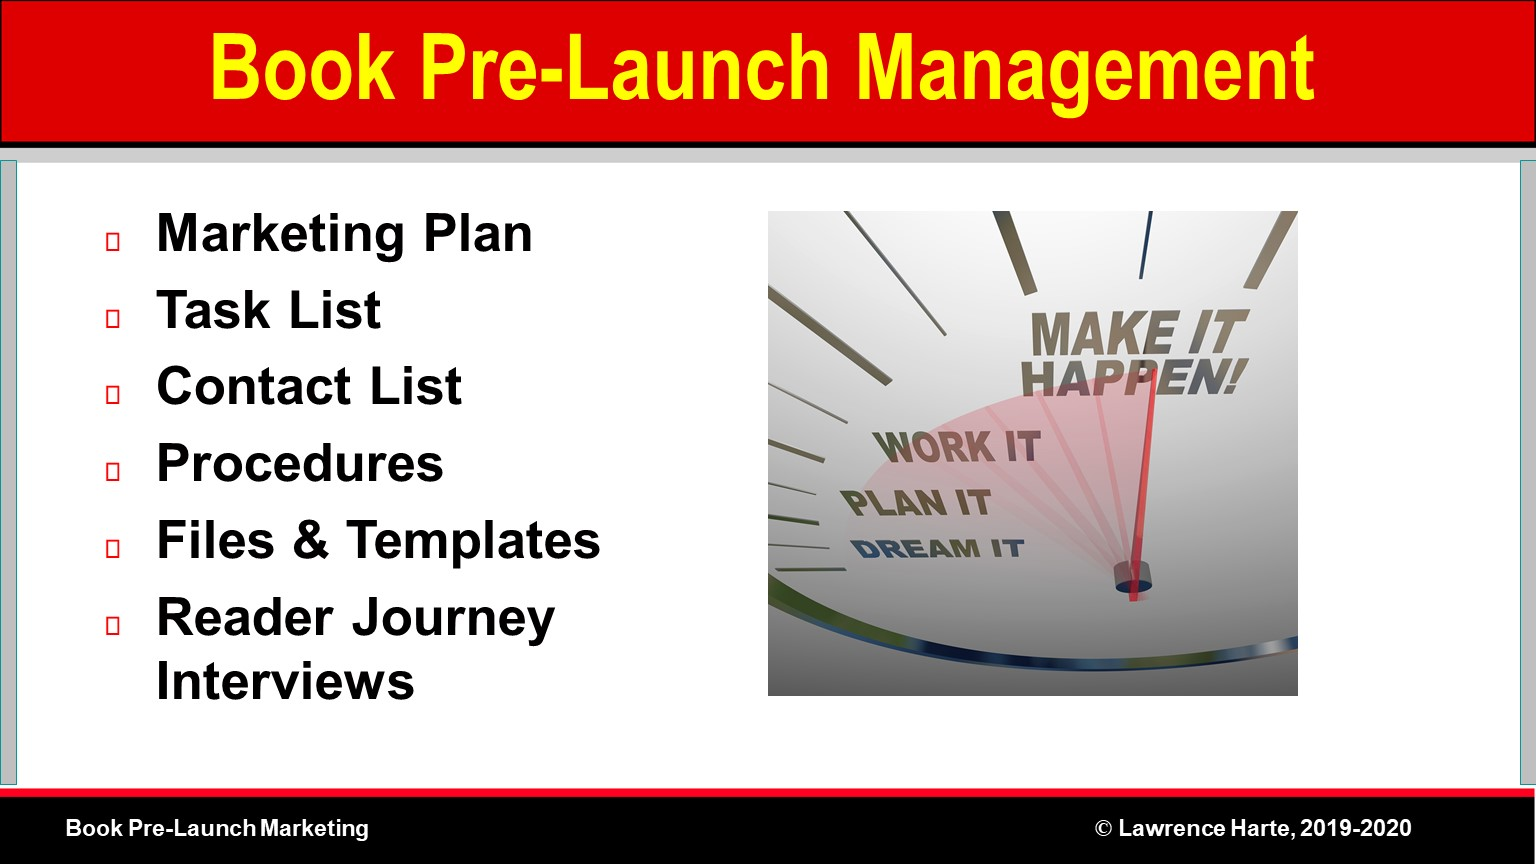 Book Pre-Launch Marketing Management